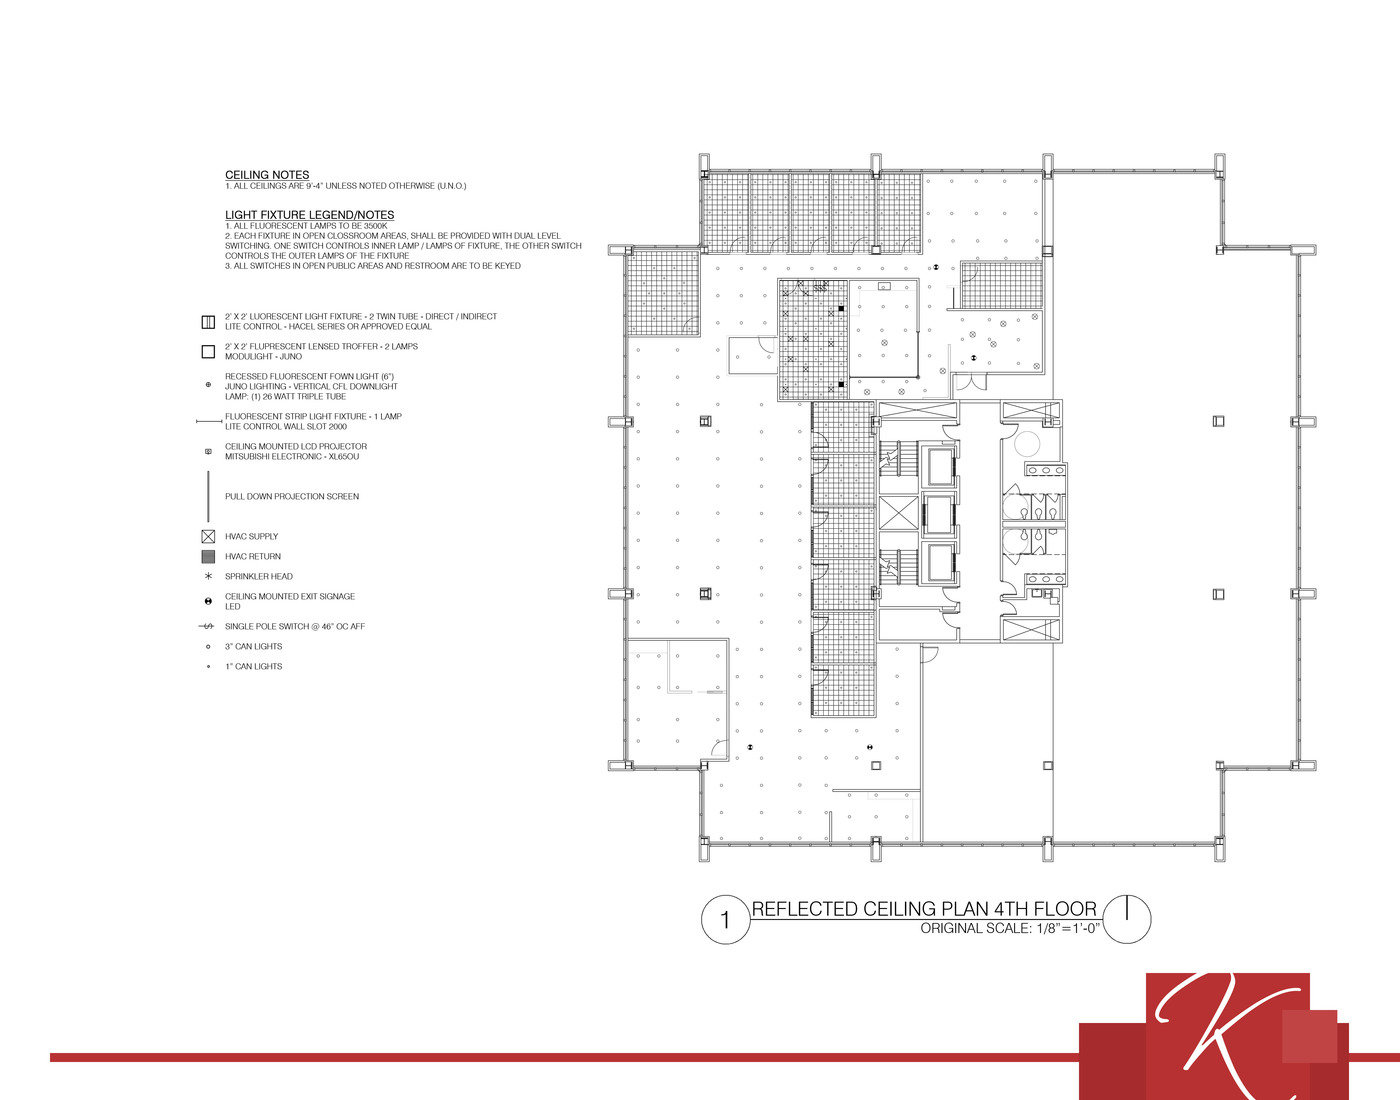 Floor plan auditor cover letter